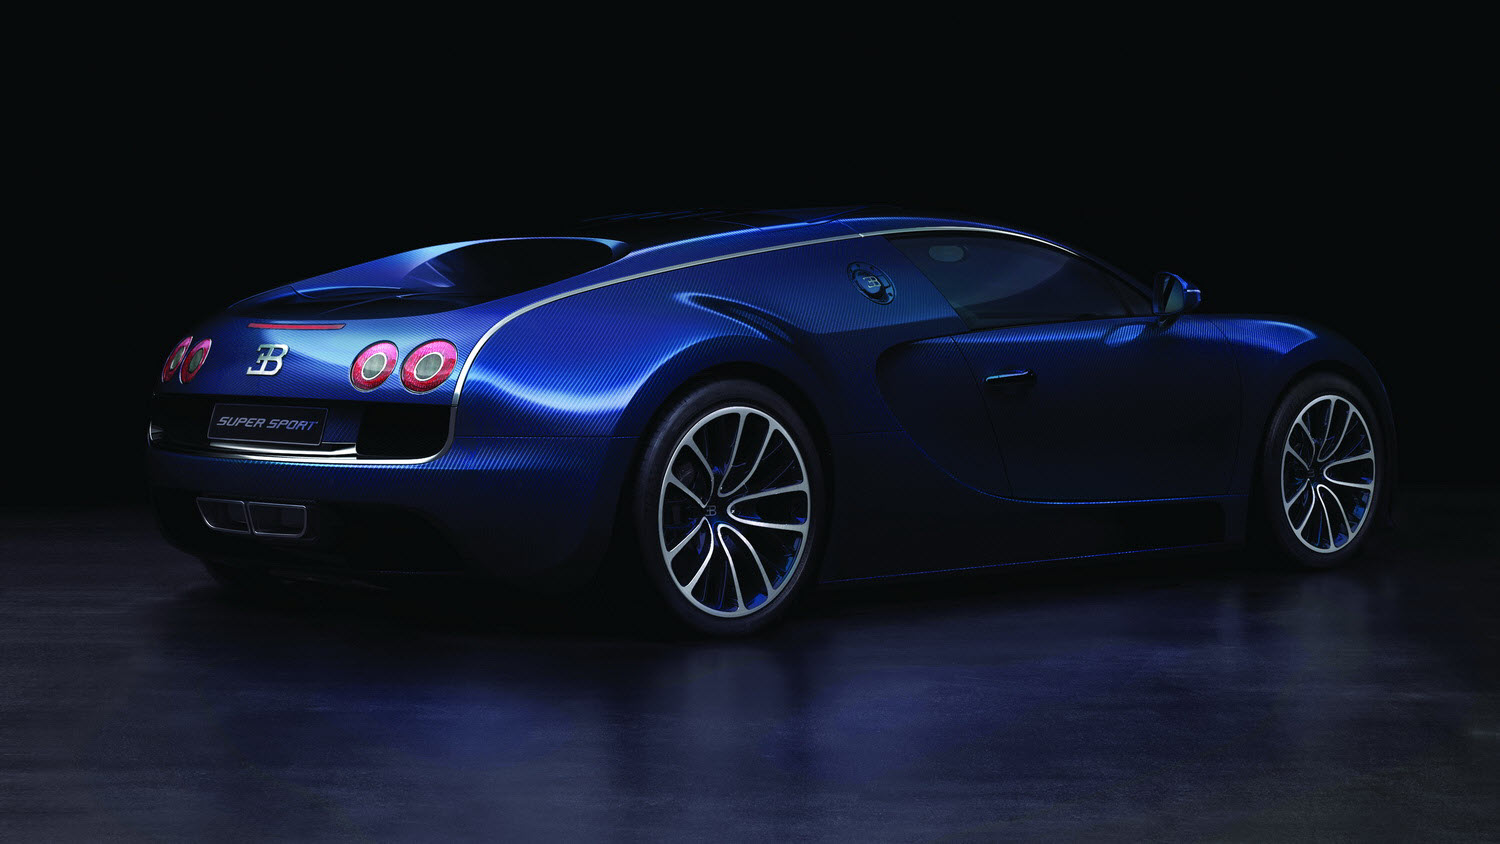 bugatti veyron super sport debuts will hit 10mph less top speed than record. Black Bedroom Furniture Sets. Home Design Ideas